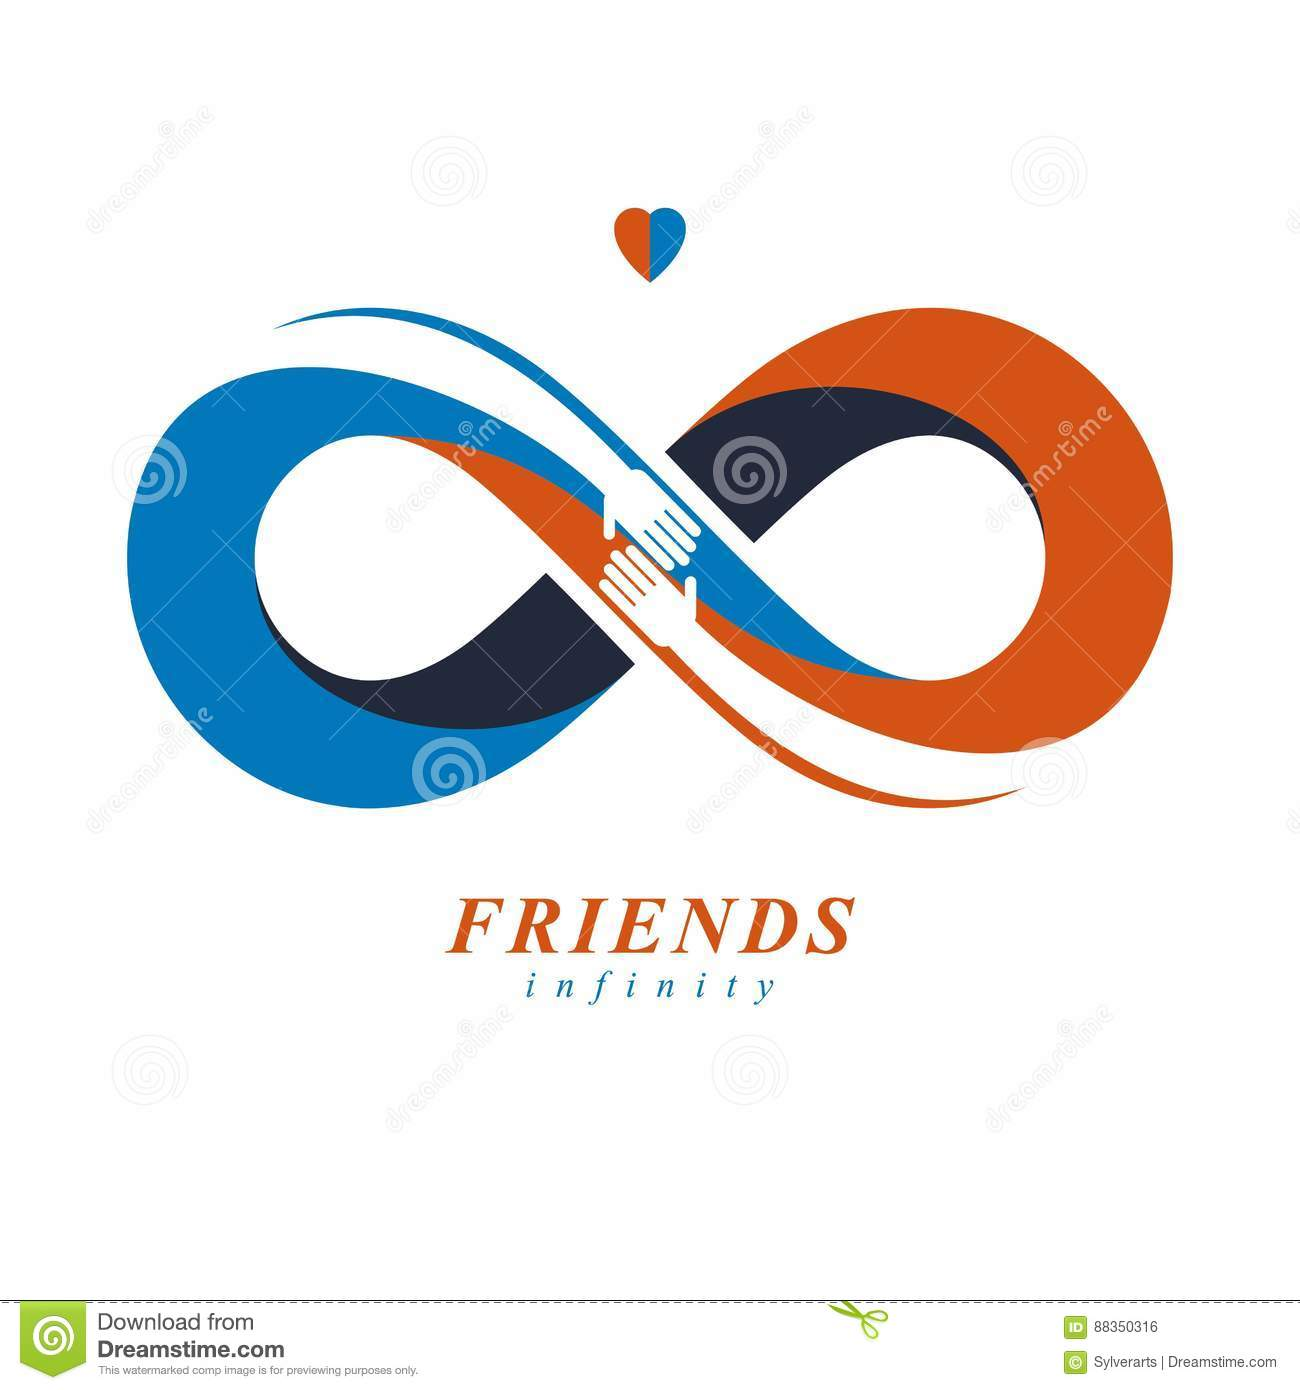 Friends forever everlasting friendship unusual vector logo comb friends forever everlasting friendship unusual vector logo comb creative illusion biocorpaavc Gallery